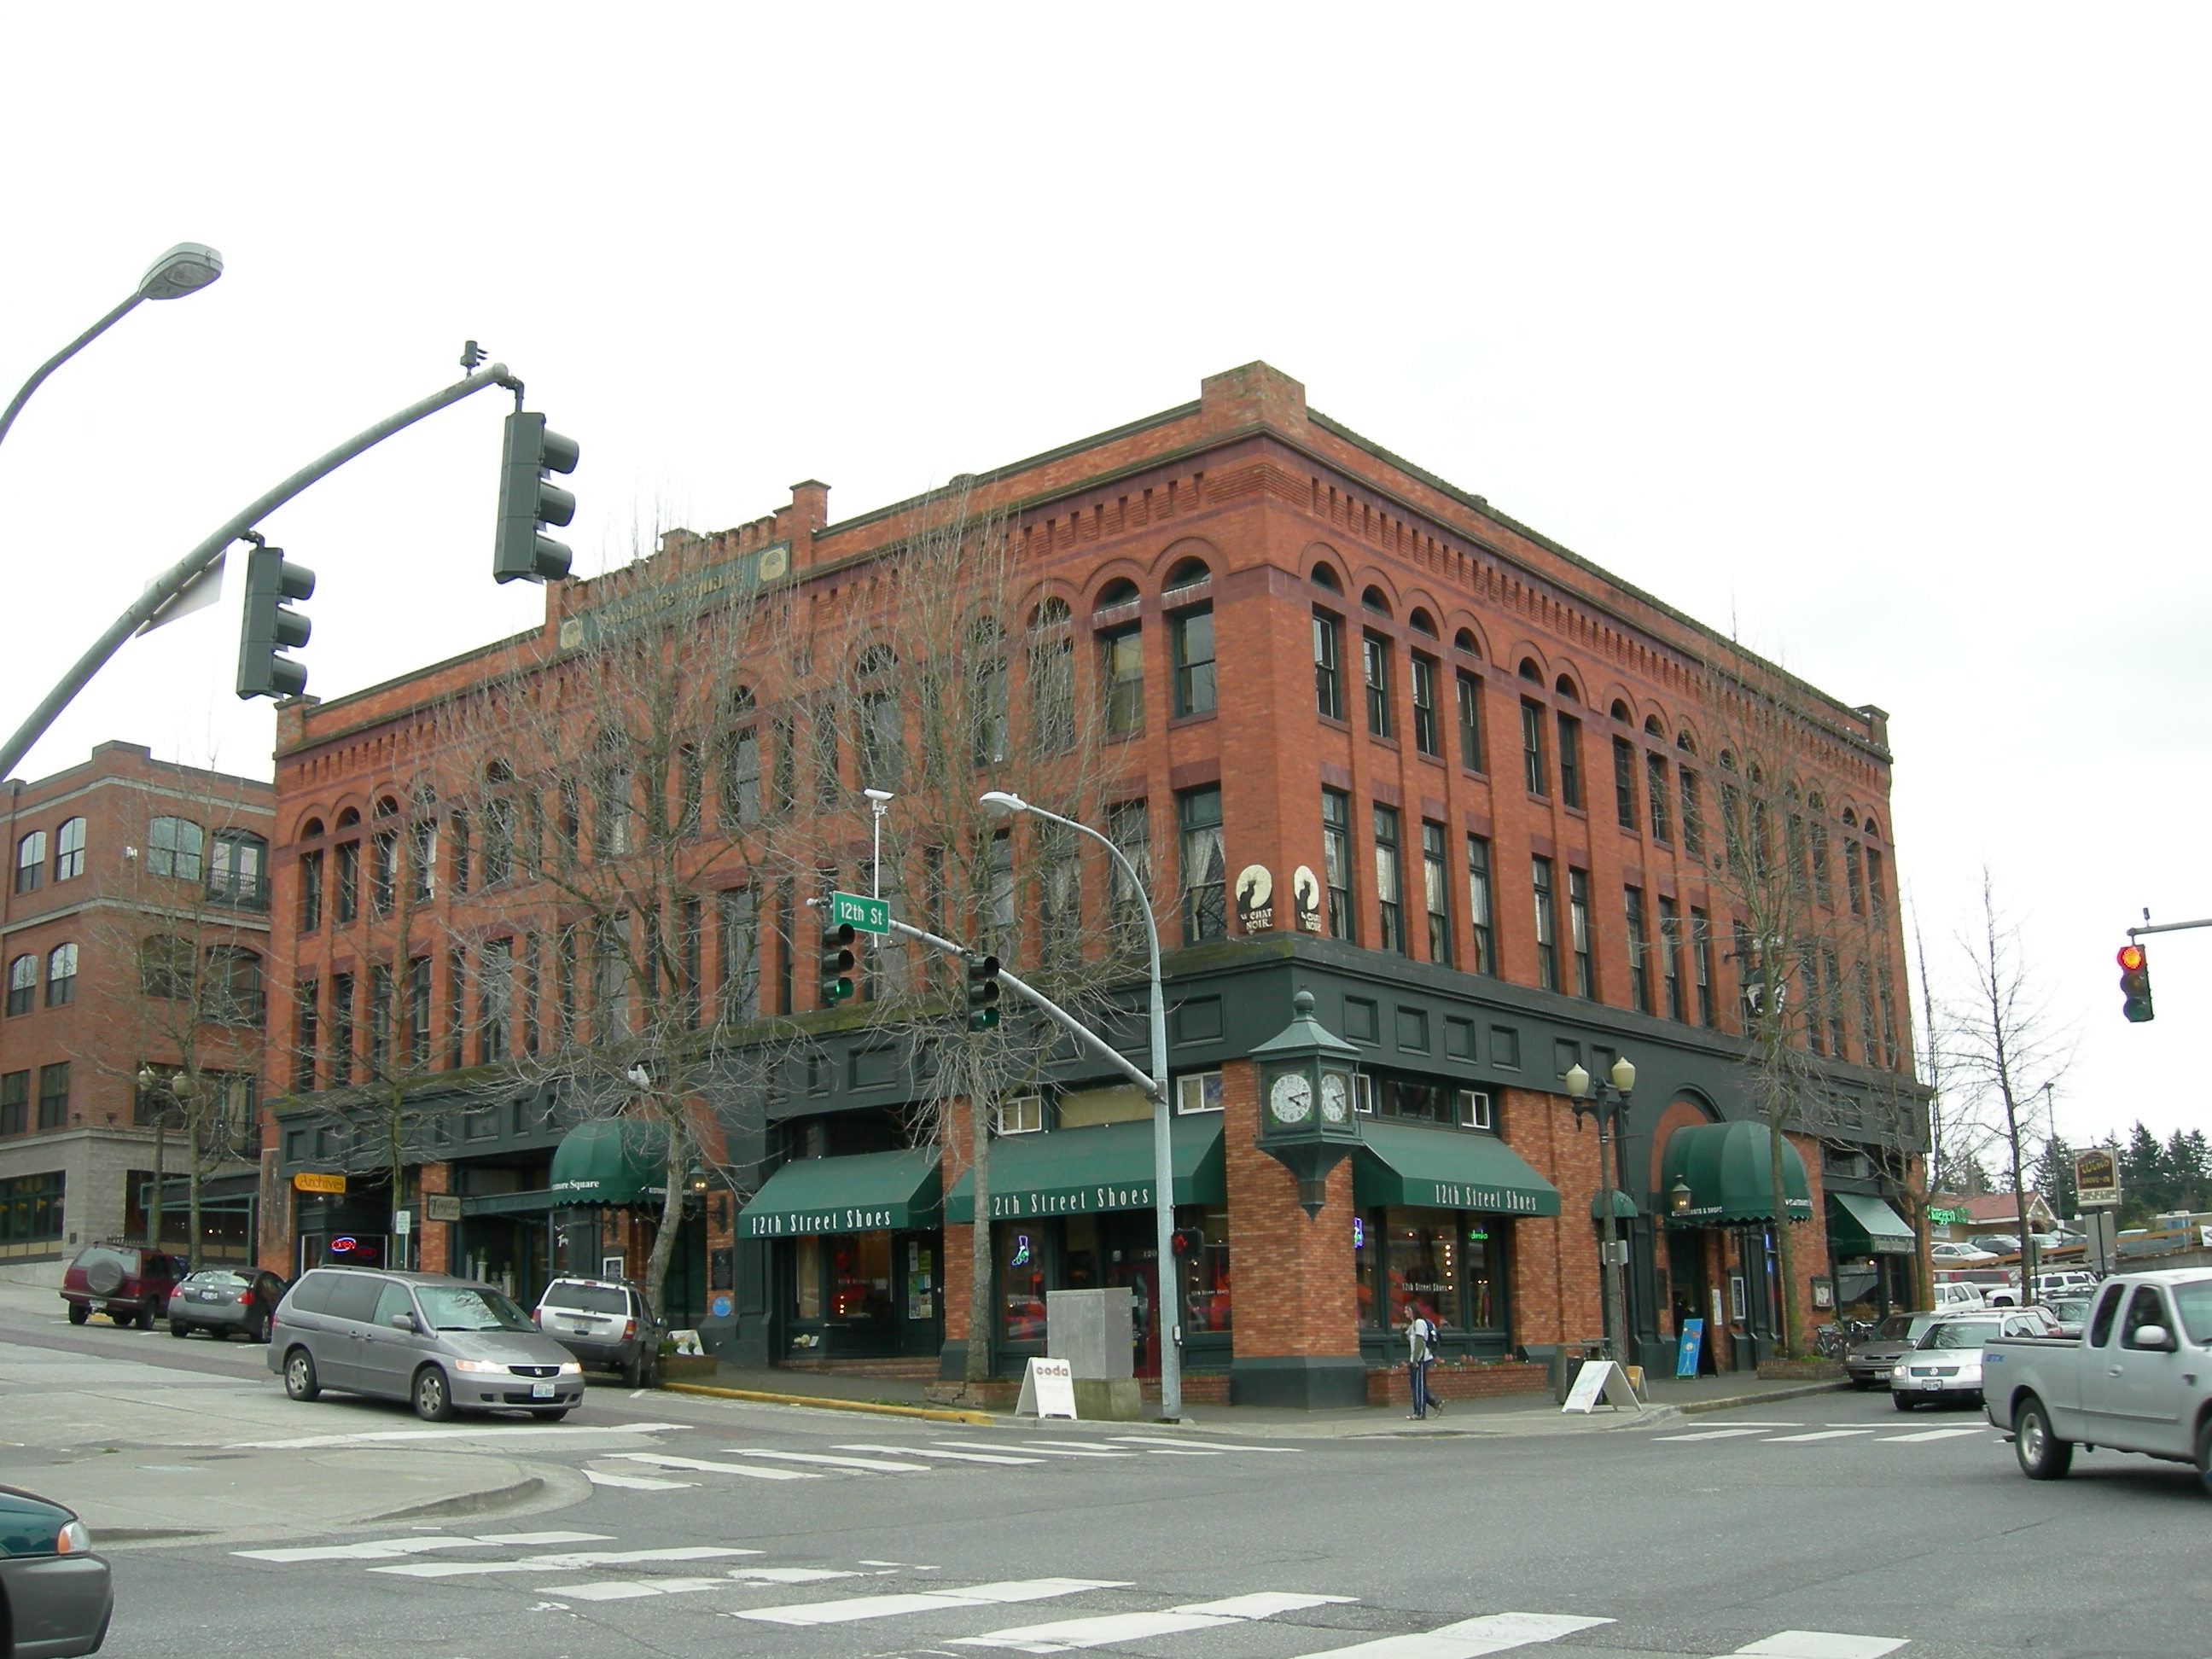 Sycamore Square Building Fairhaven Bellingham Washington Whatcom County